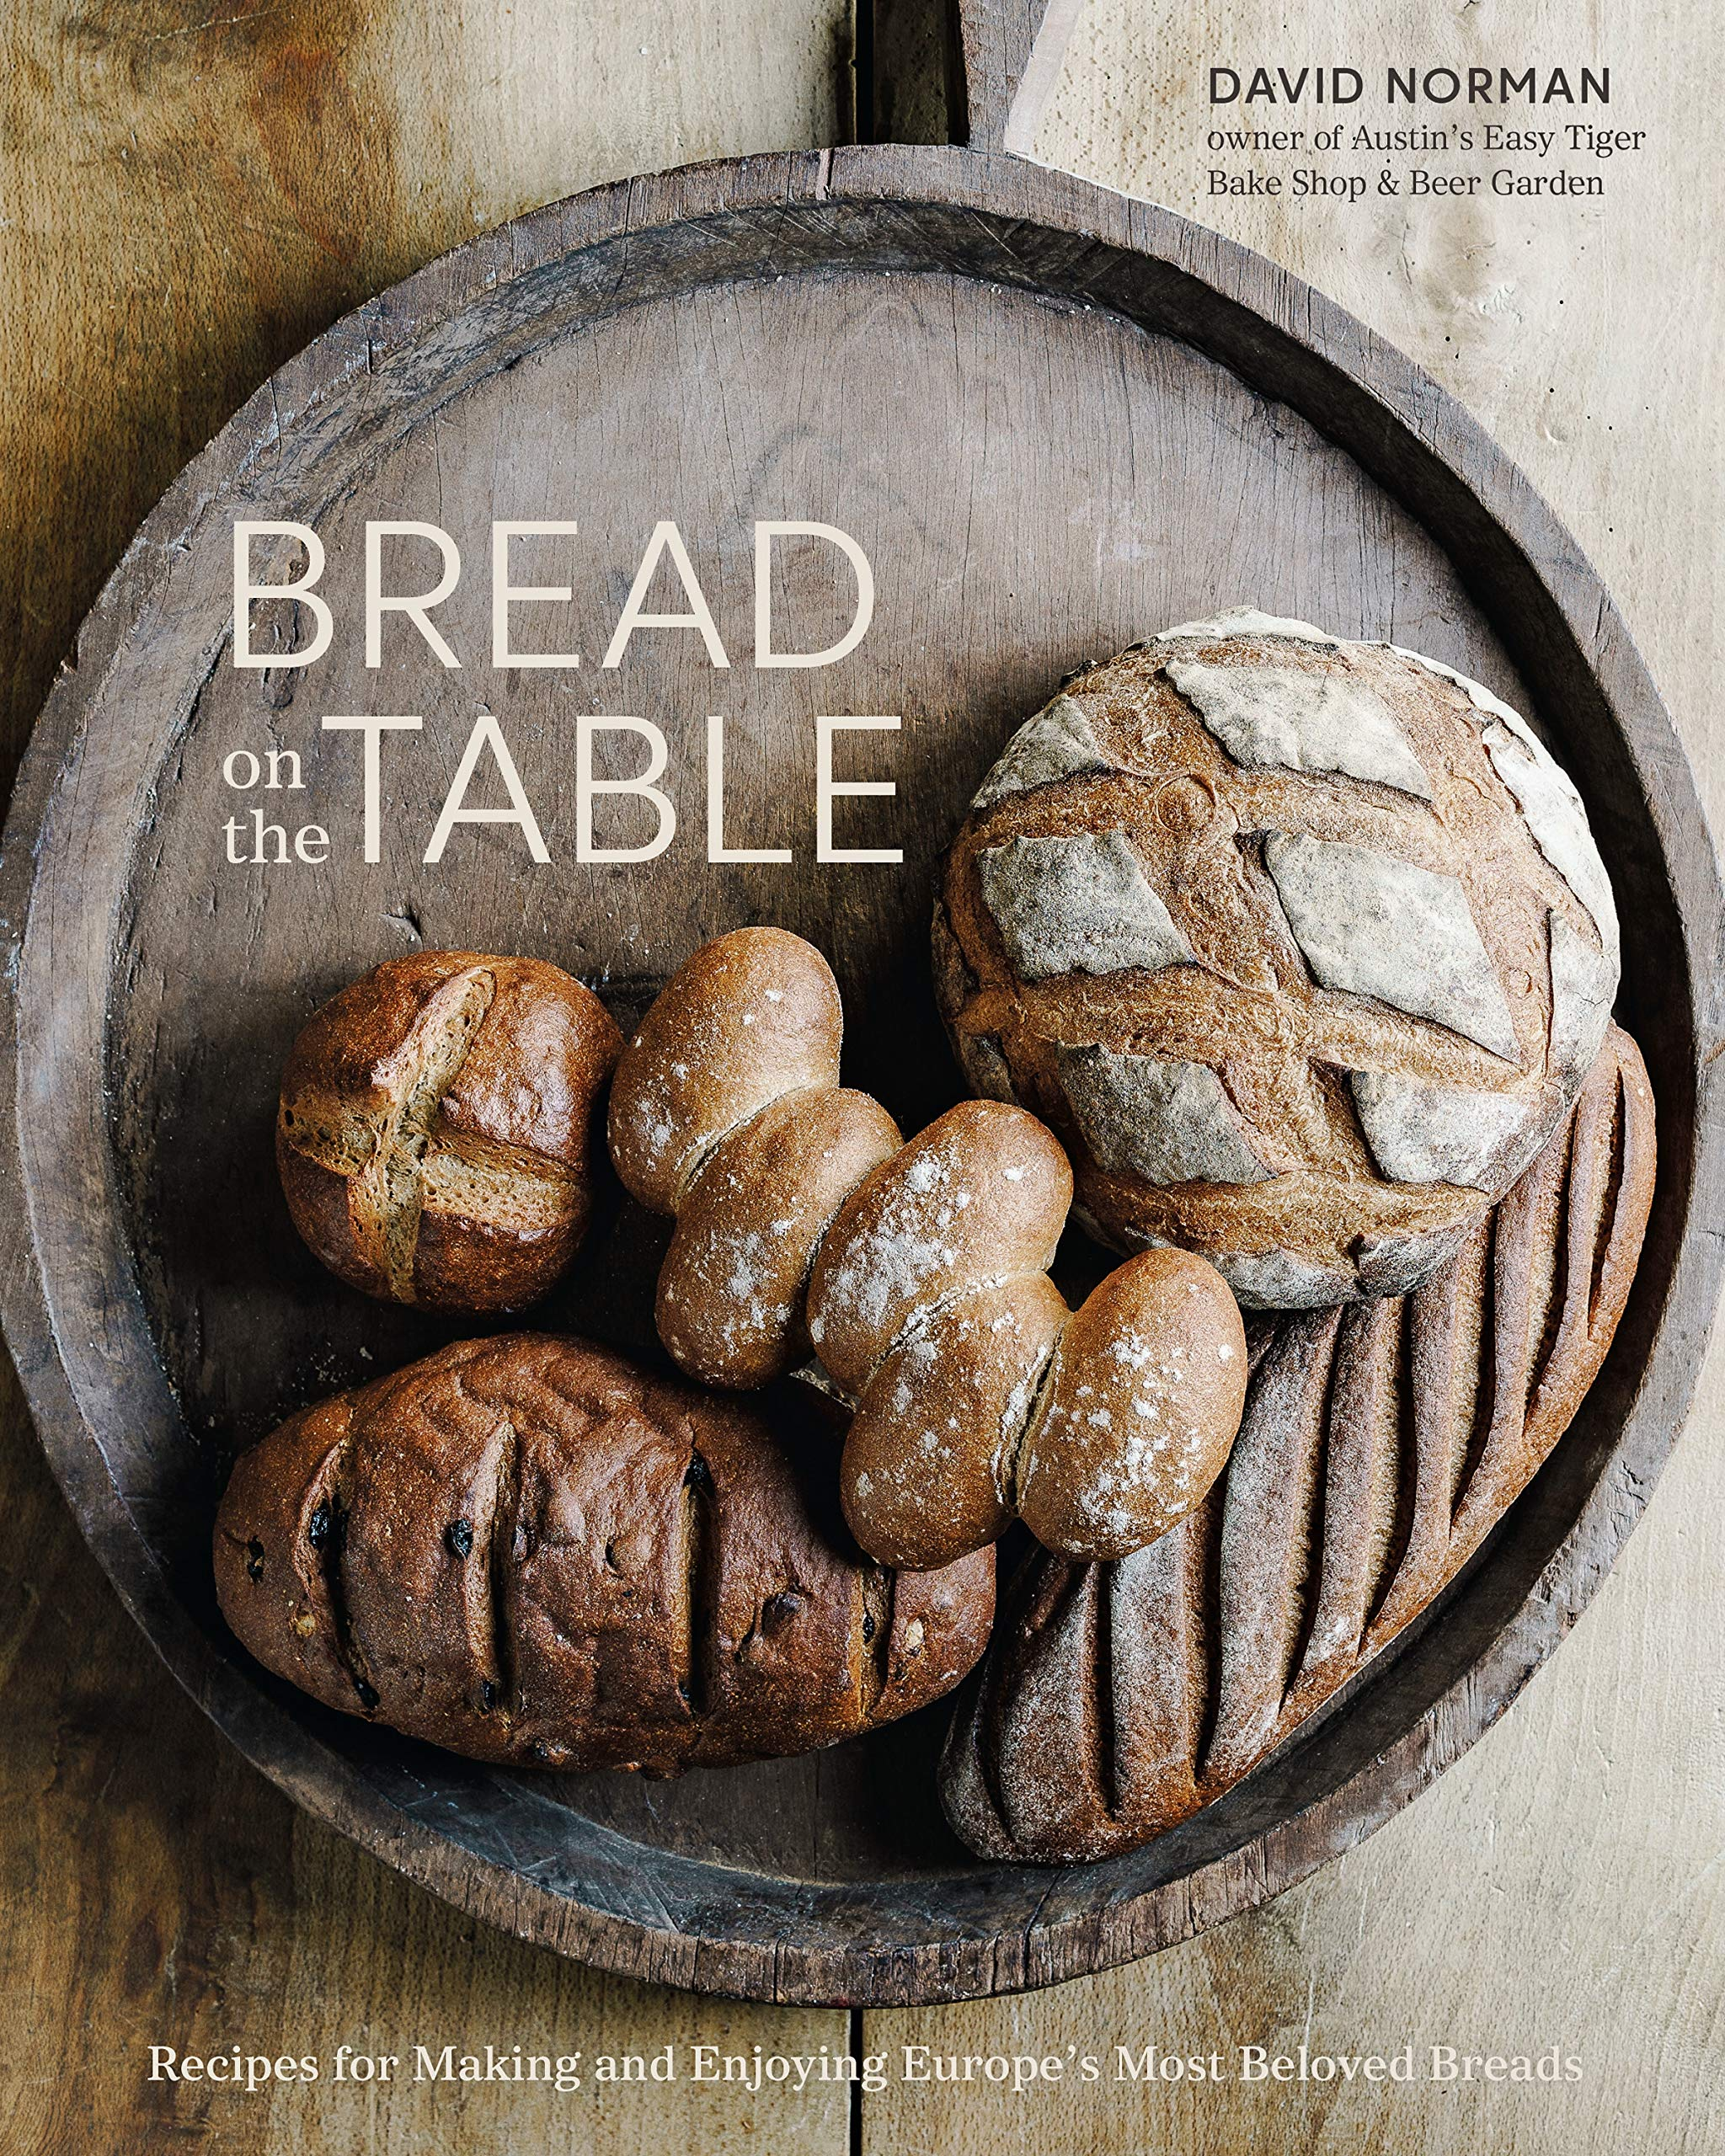 Bread on the Table: Recipes for Making and Enjoying Europe's Most Beloved Breads